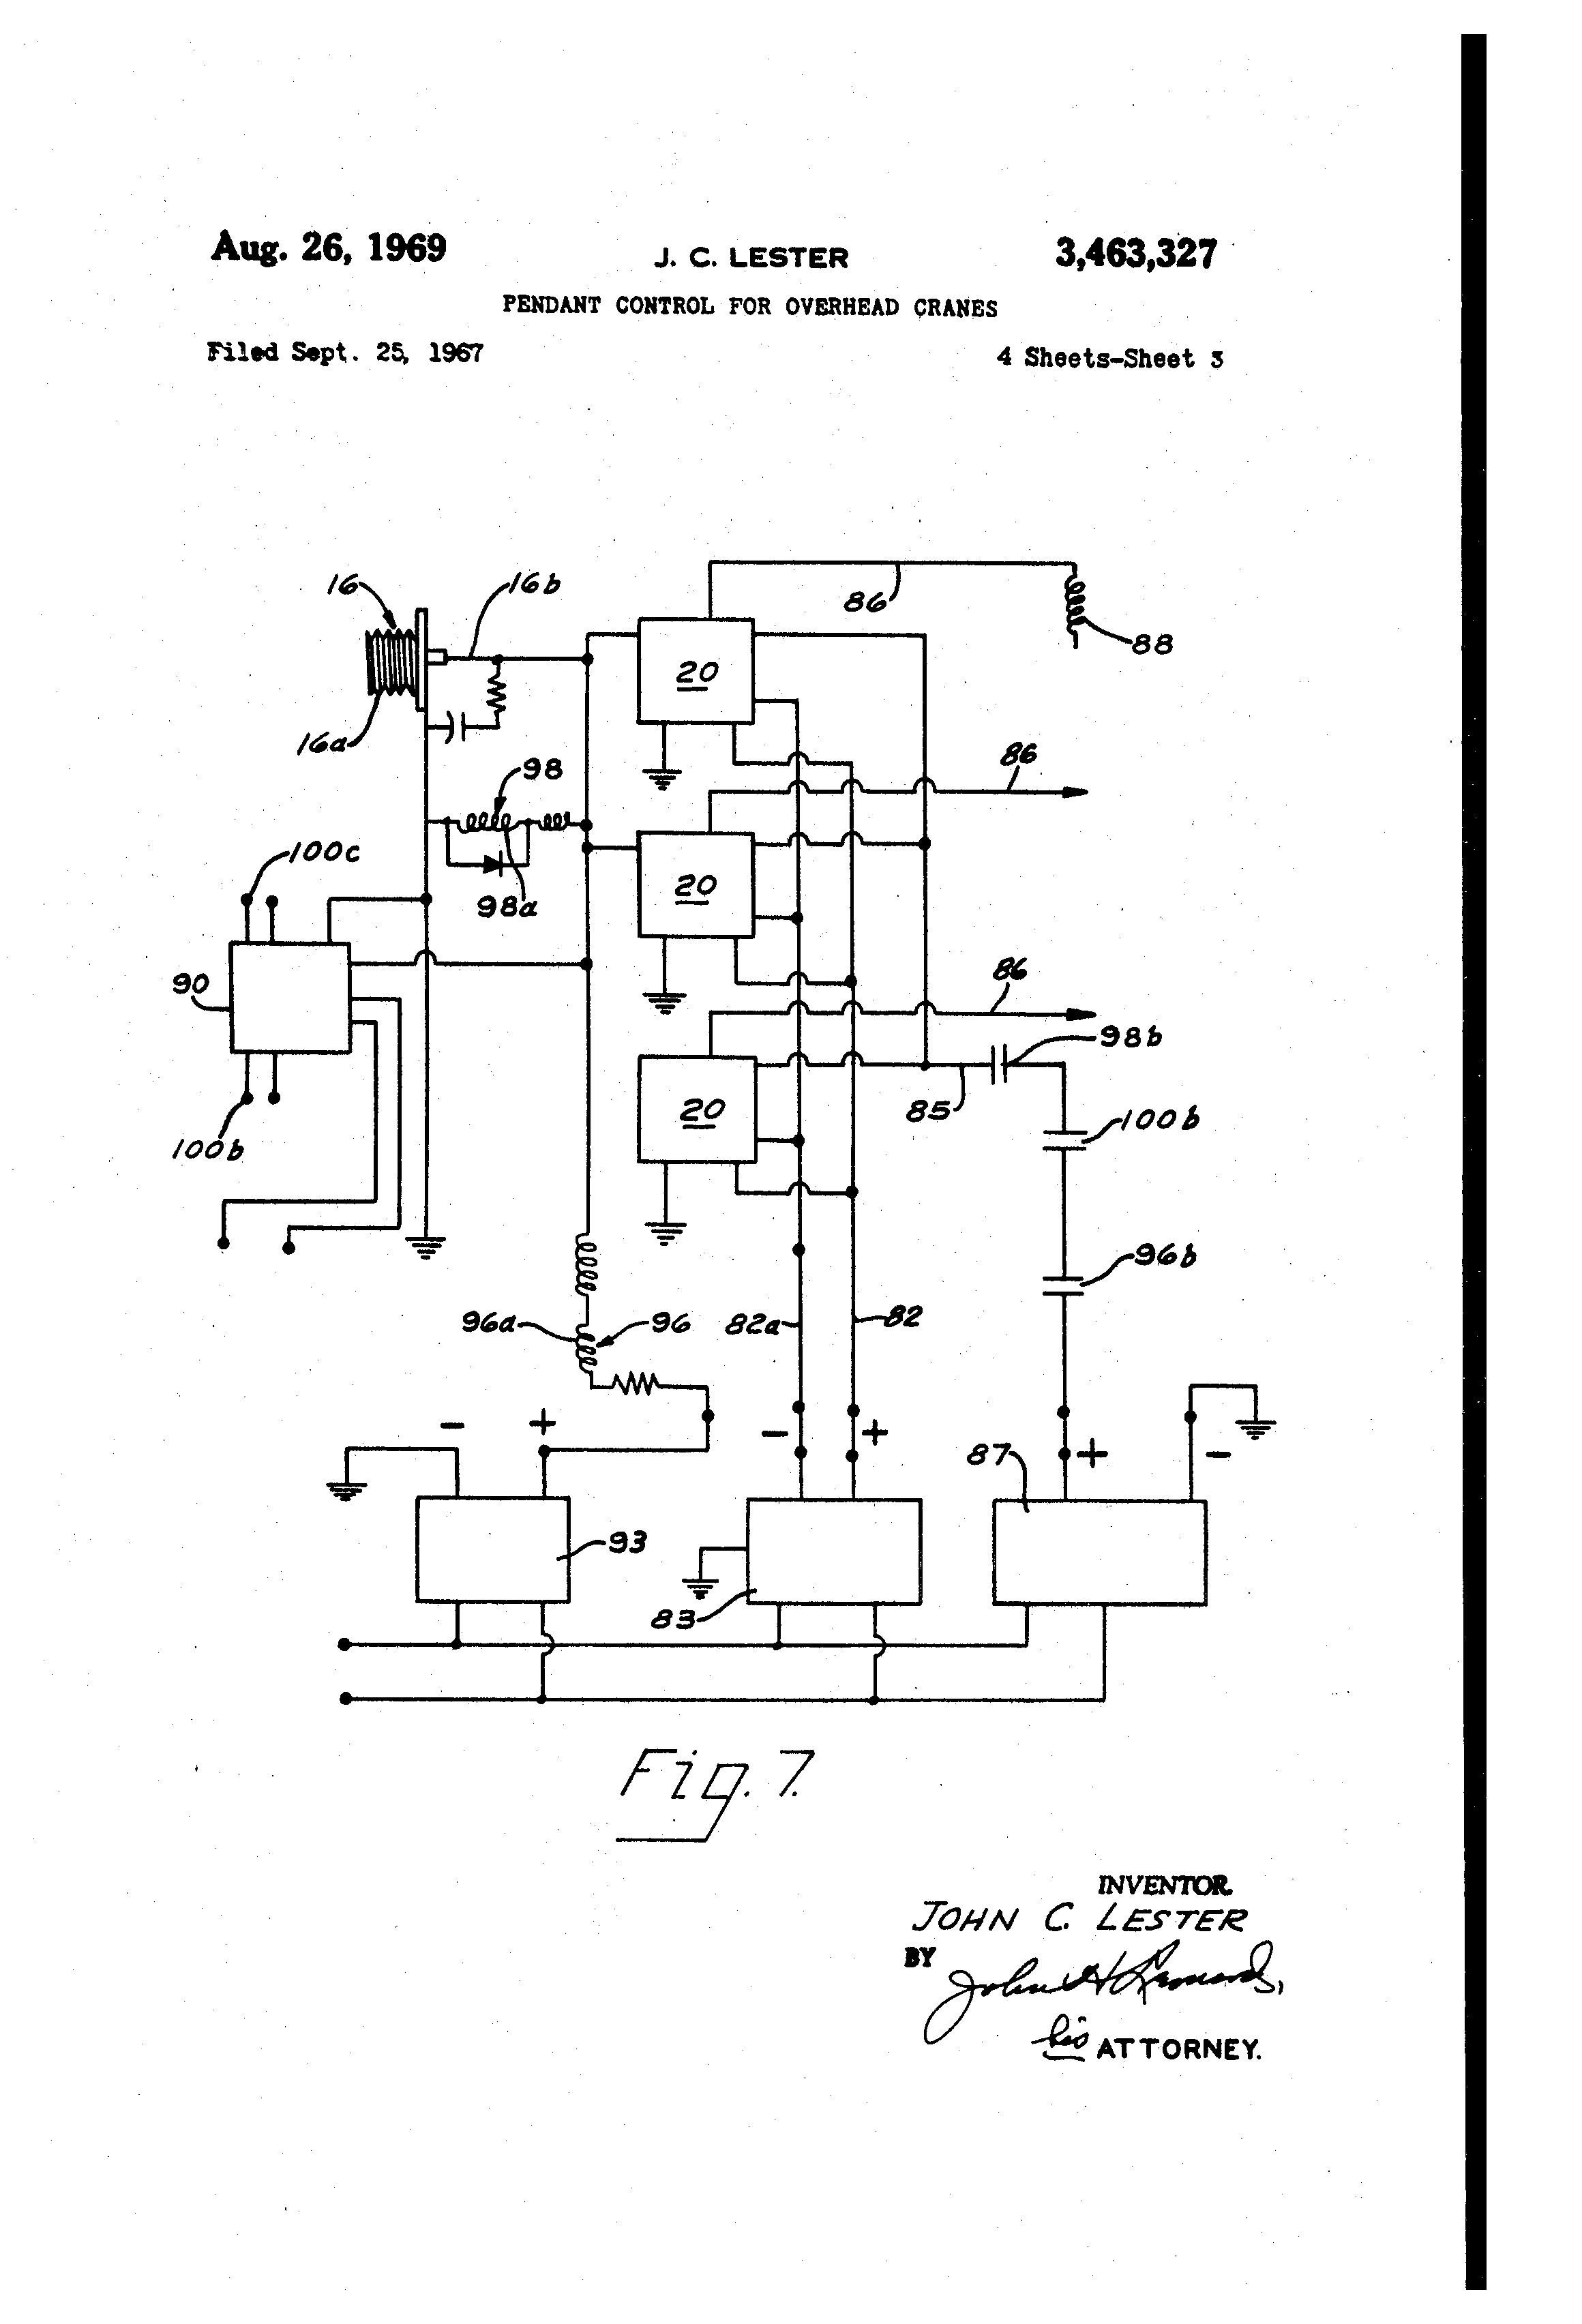 [WLLP_2054]   Fasse Wiring Diagram - Electrical Fuse Panel Diagram Of Pole 3 for Wiring  Diagram Schematics | Fasse Wiring Diagram |  | Wiring Diagram Schematics